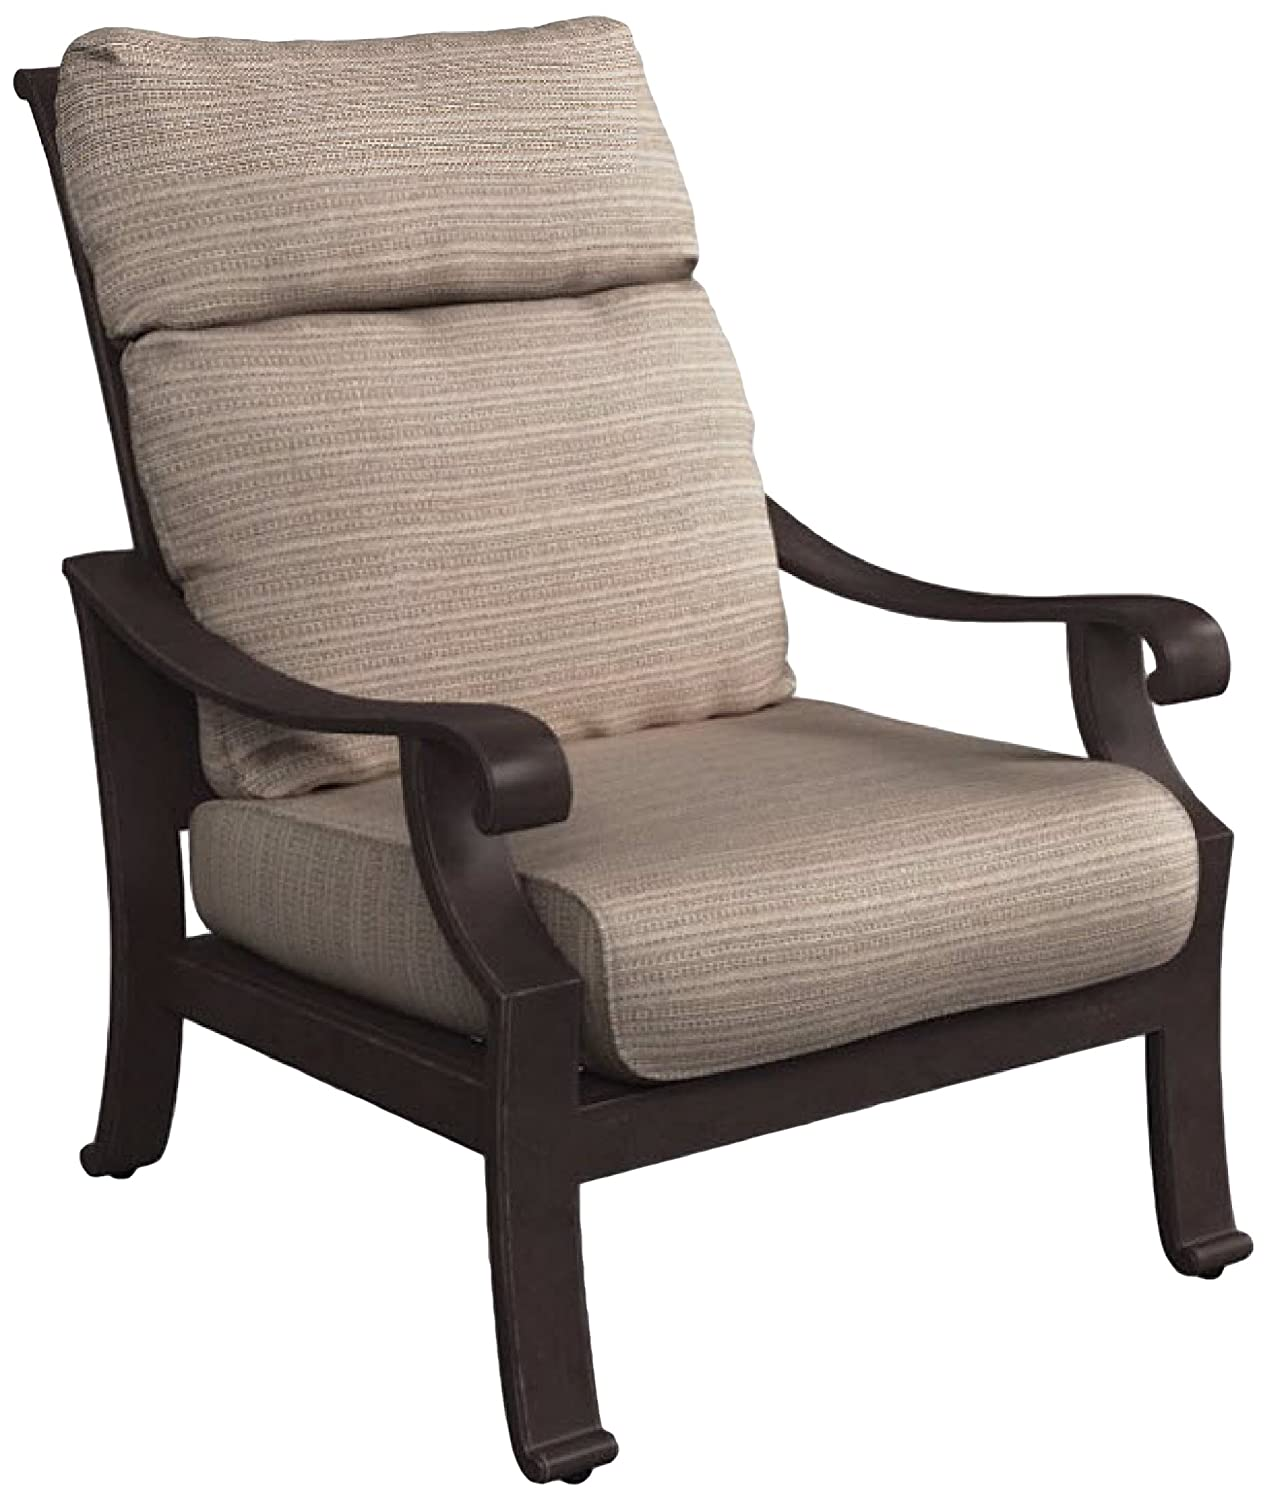 Ashley Furniture Signature Design – Chestnut Ridge Outdoor Lounge Chair with Cushion – Brown